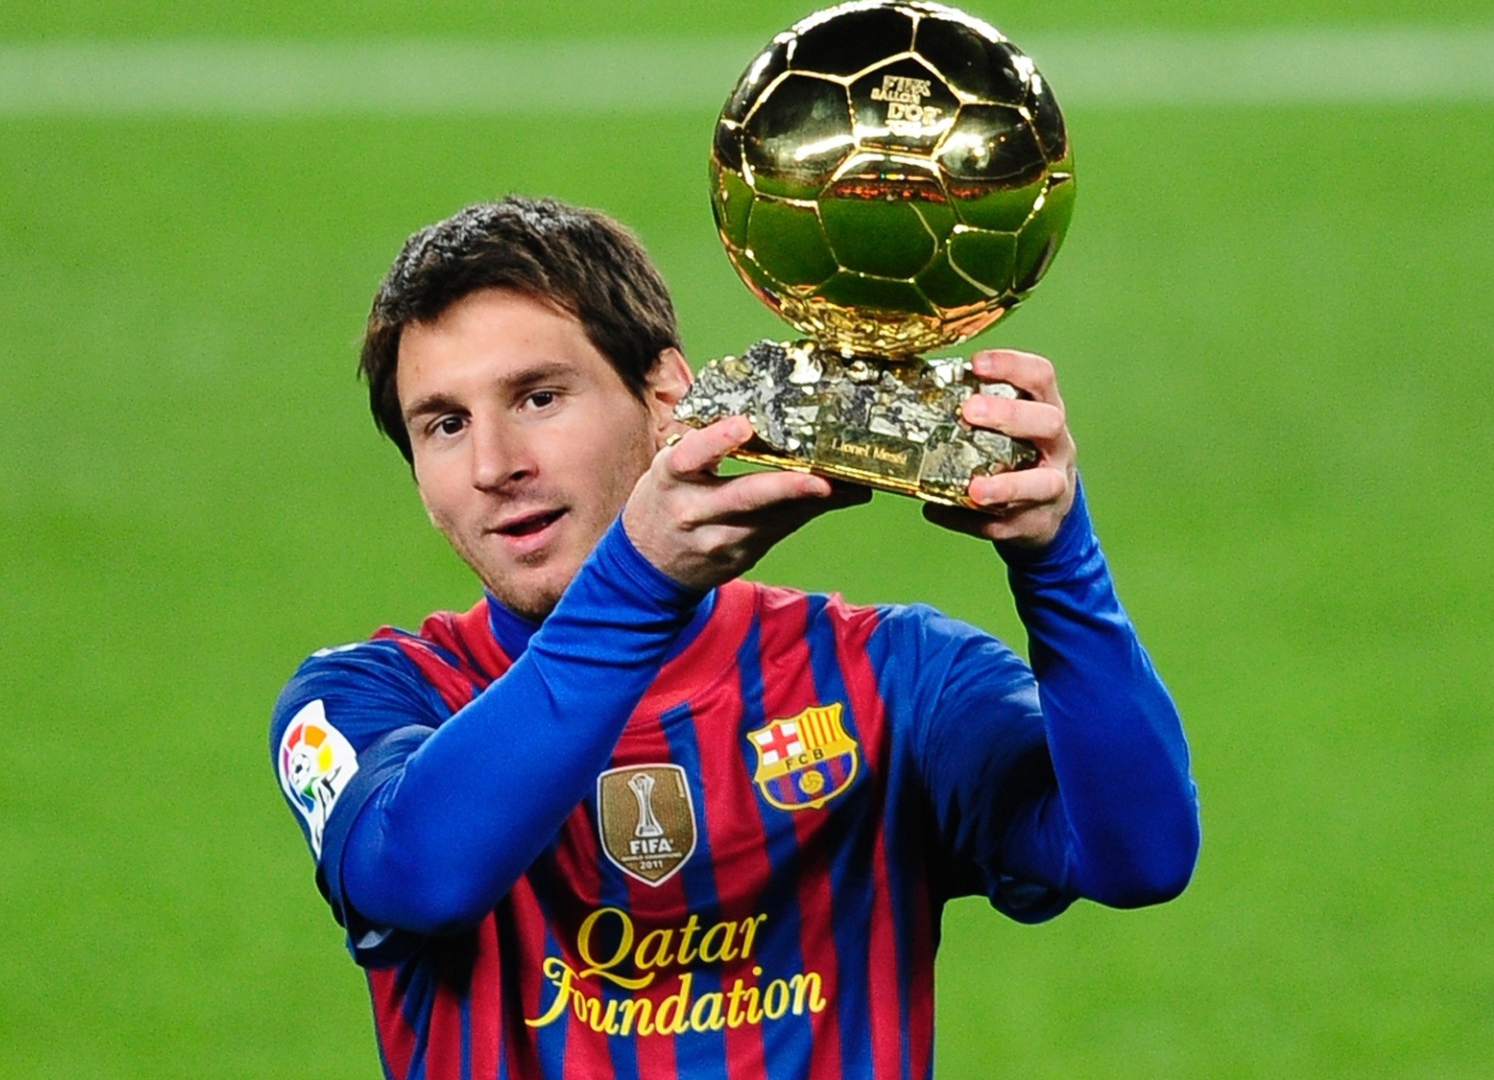 lionel messi football player latest hd wallpapers 2013